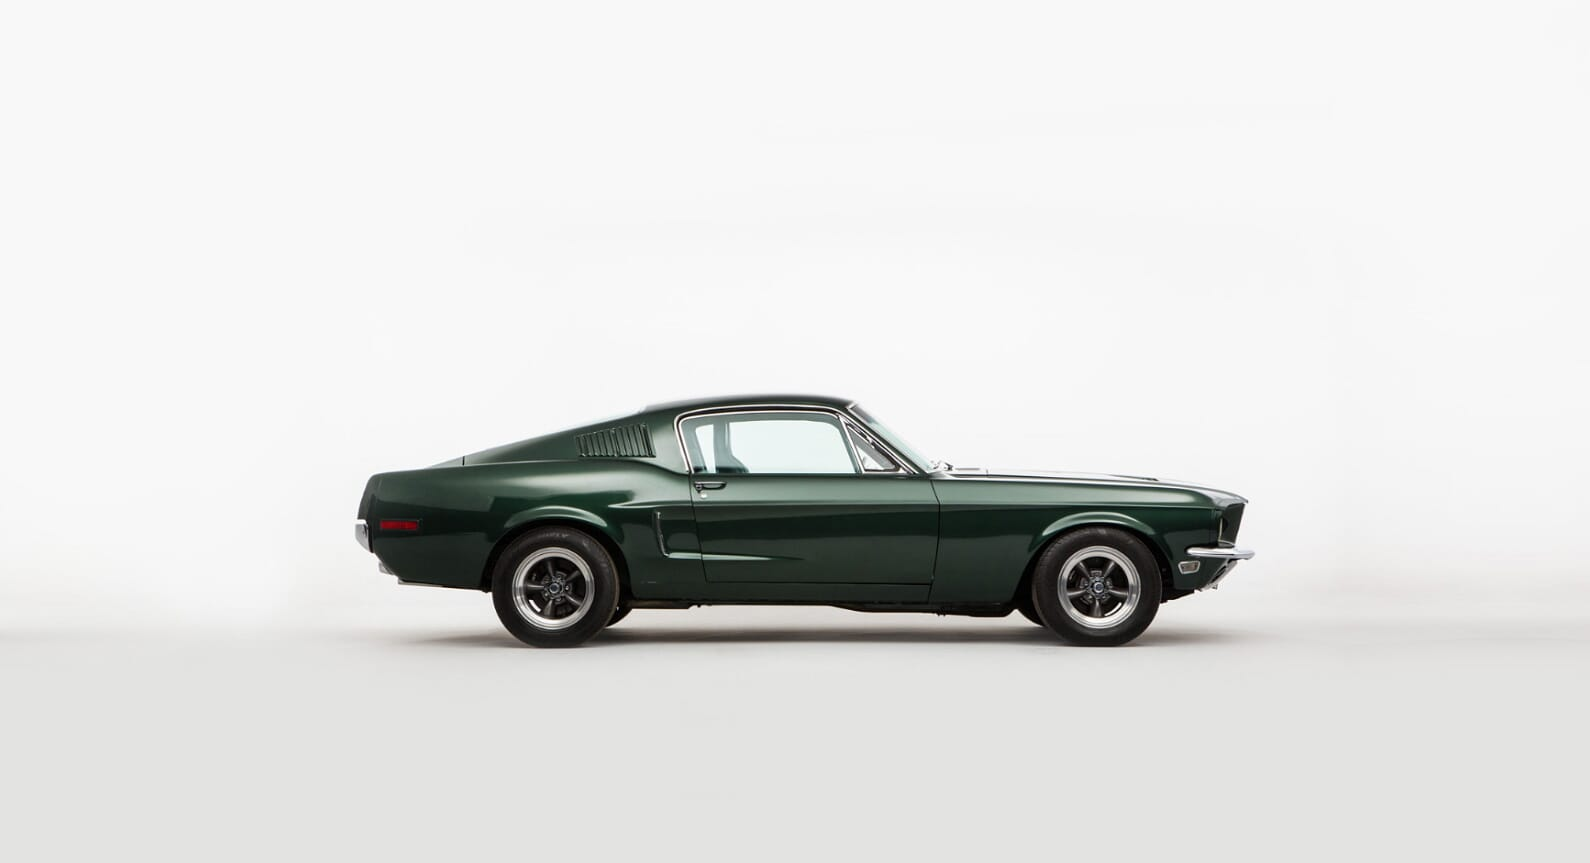 This 1968 Ford Mustang Fastback Is The 'Bullitt' Car You Need